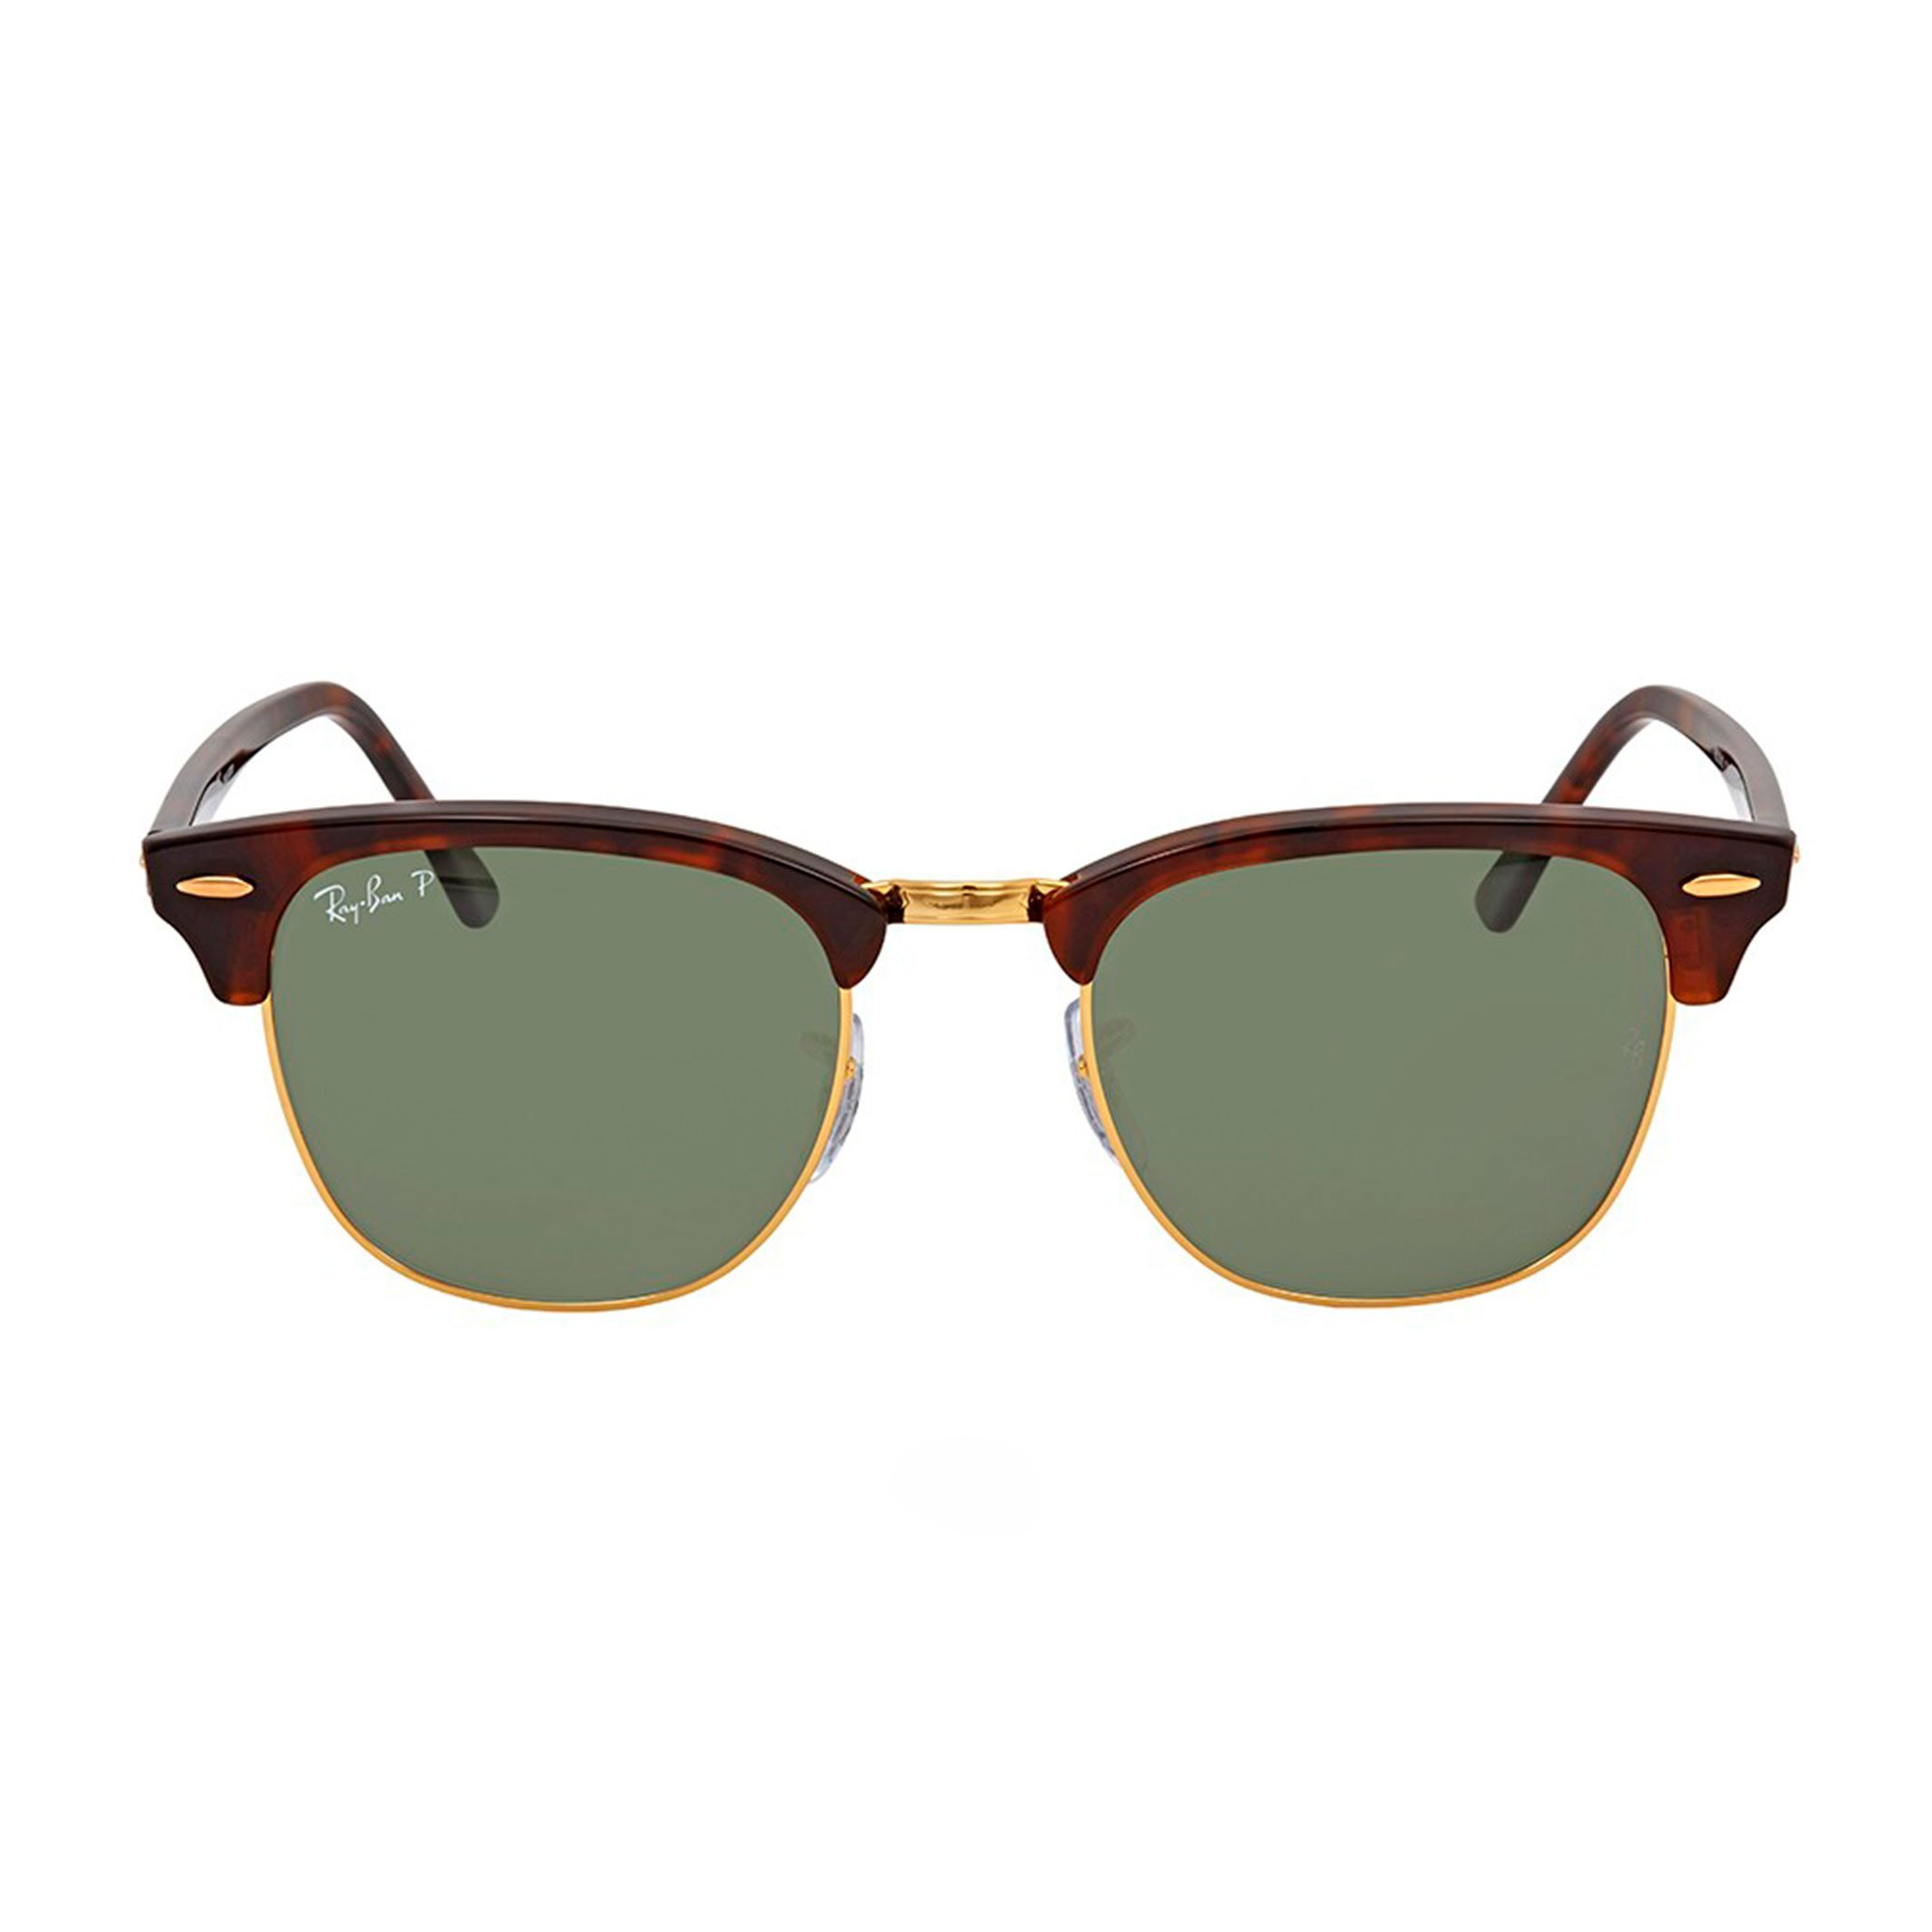 1076da48cd Details about Ray-Ban RB3016-51 Clubmaster Sunglasses